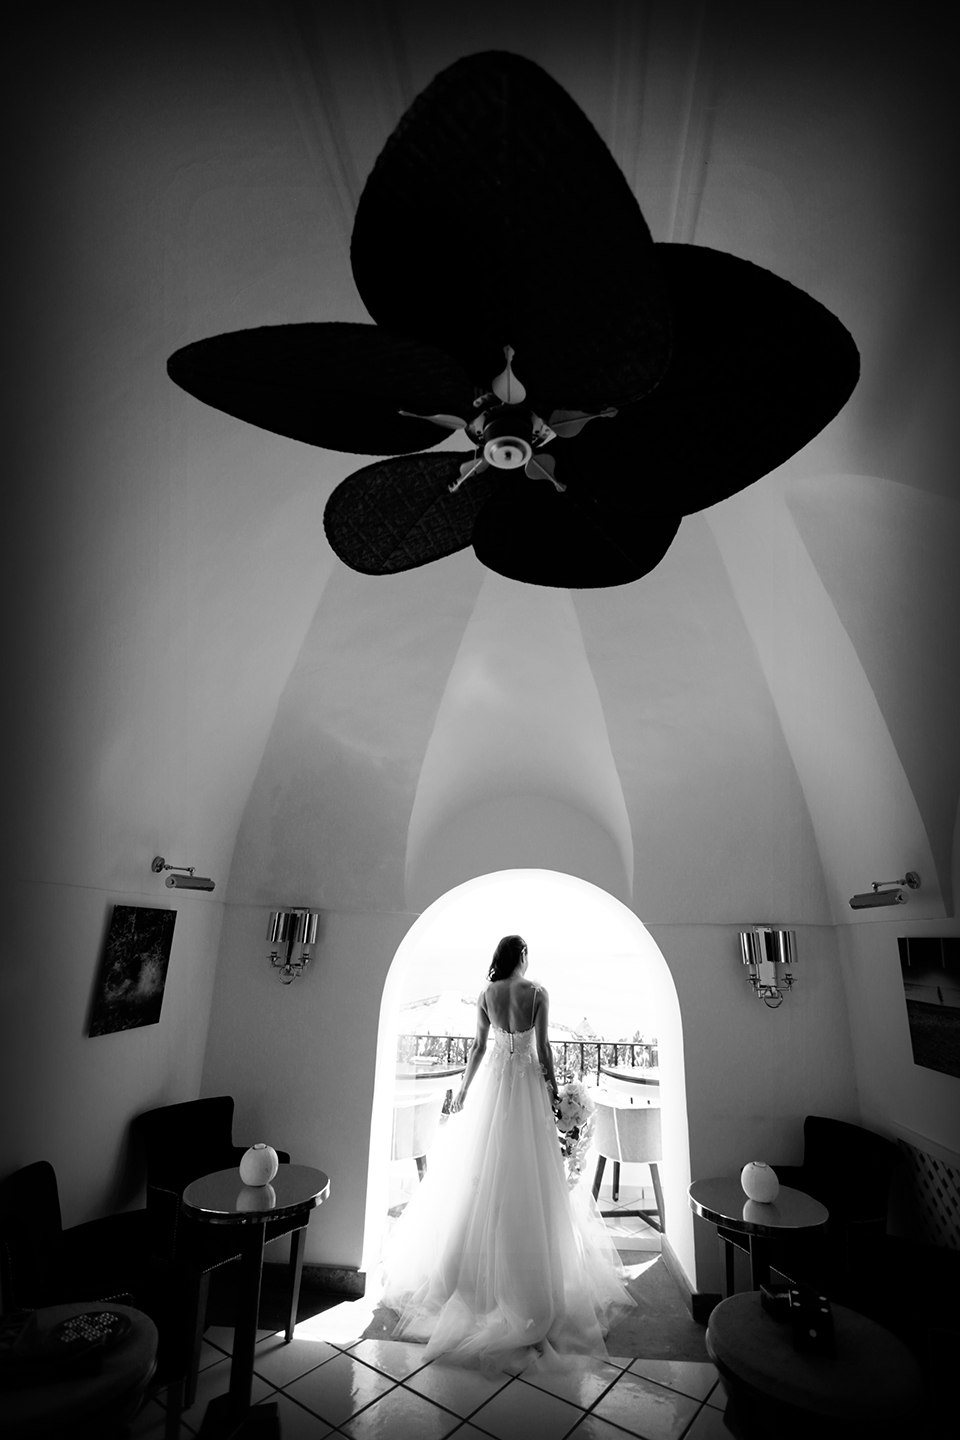 positano-weddin-photographers-italy-wedding-photographers-destination-wedding-photographers-estilo-best-wedding-photographers-in-the-world-casper-bosman-wedding-gown-wedding-style-stylish-modern-wedding-photography-016.jpg